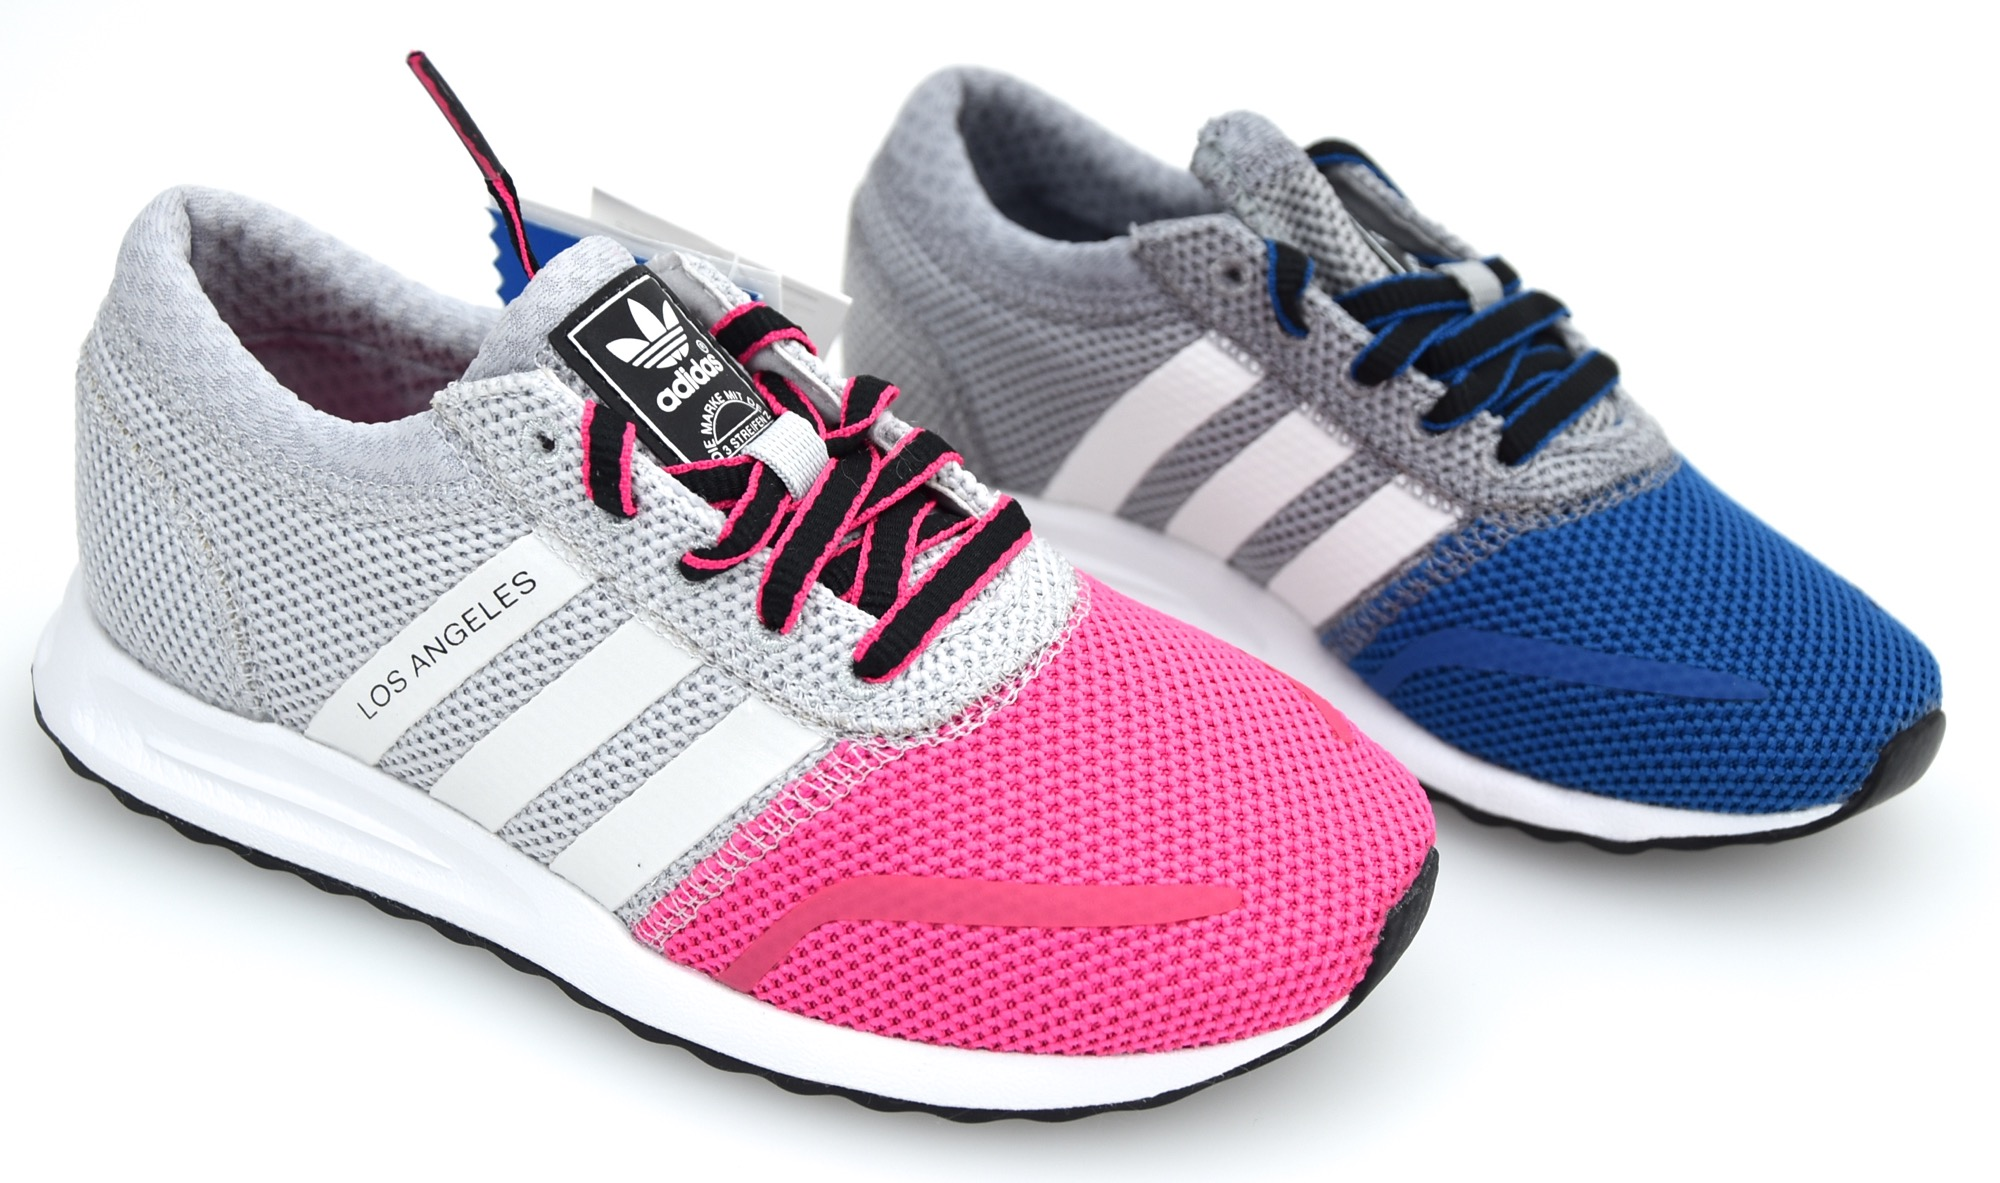 4df4eee782b Details about ADIDAS JUNIOR BOY GIRL SNEAKER SHOES CASUAL CODE S74878 -  S74877 LOS ANGELES K